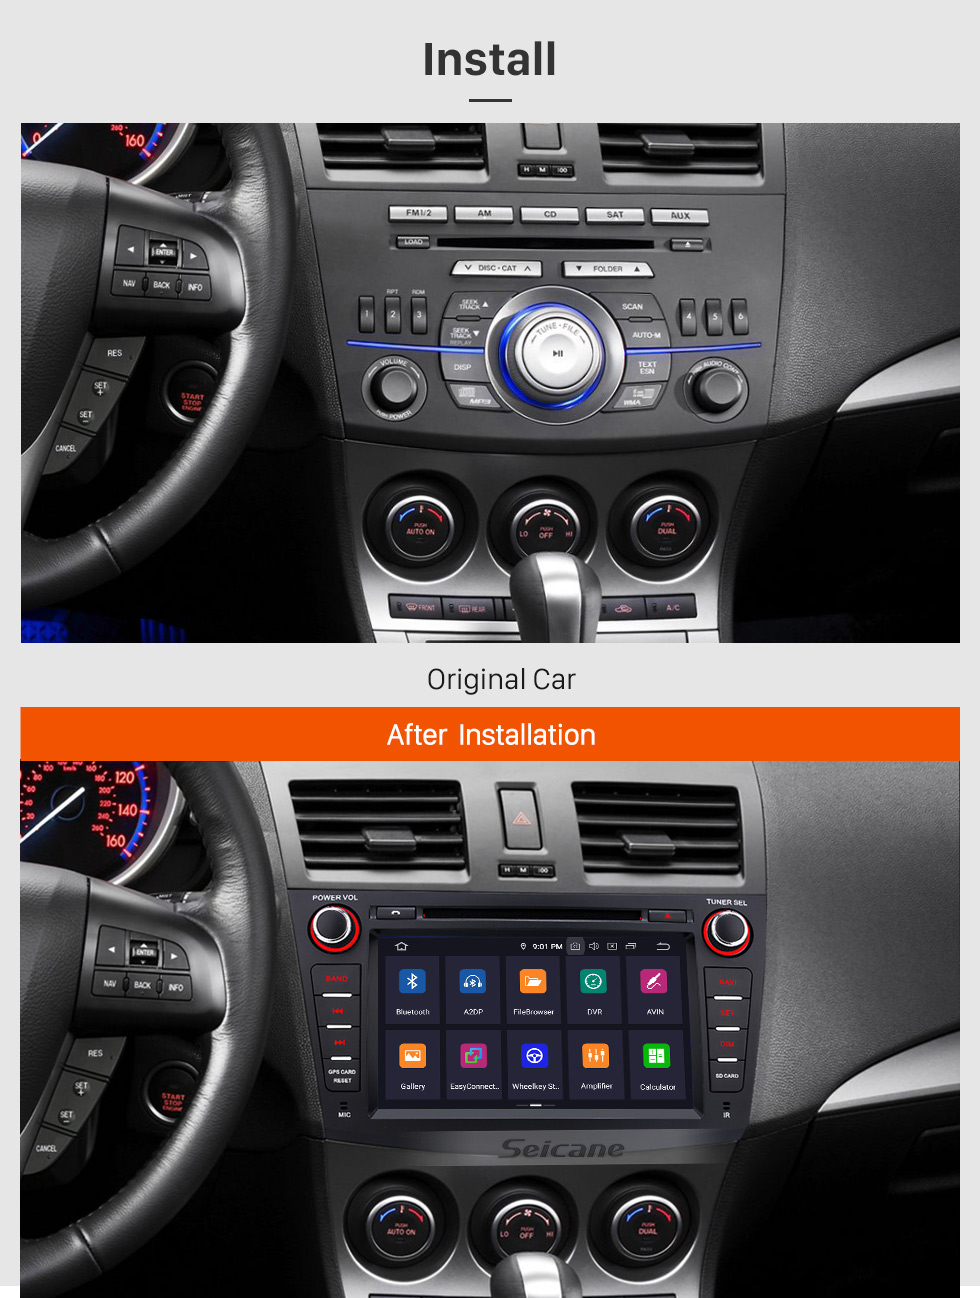 Seicane 8 inch HD Touchscreen Android 9.0 for 2010 2011 2012 Mazda 3 Radio with GPS Navigation Bluetooth WIFI USB Support 1080P Video DVR OBD2 Rearview camera